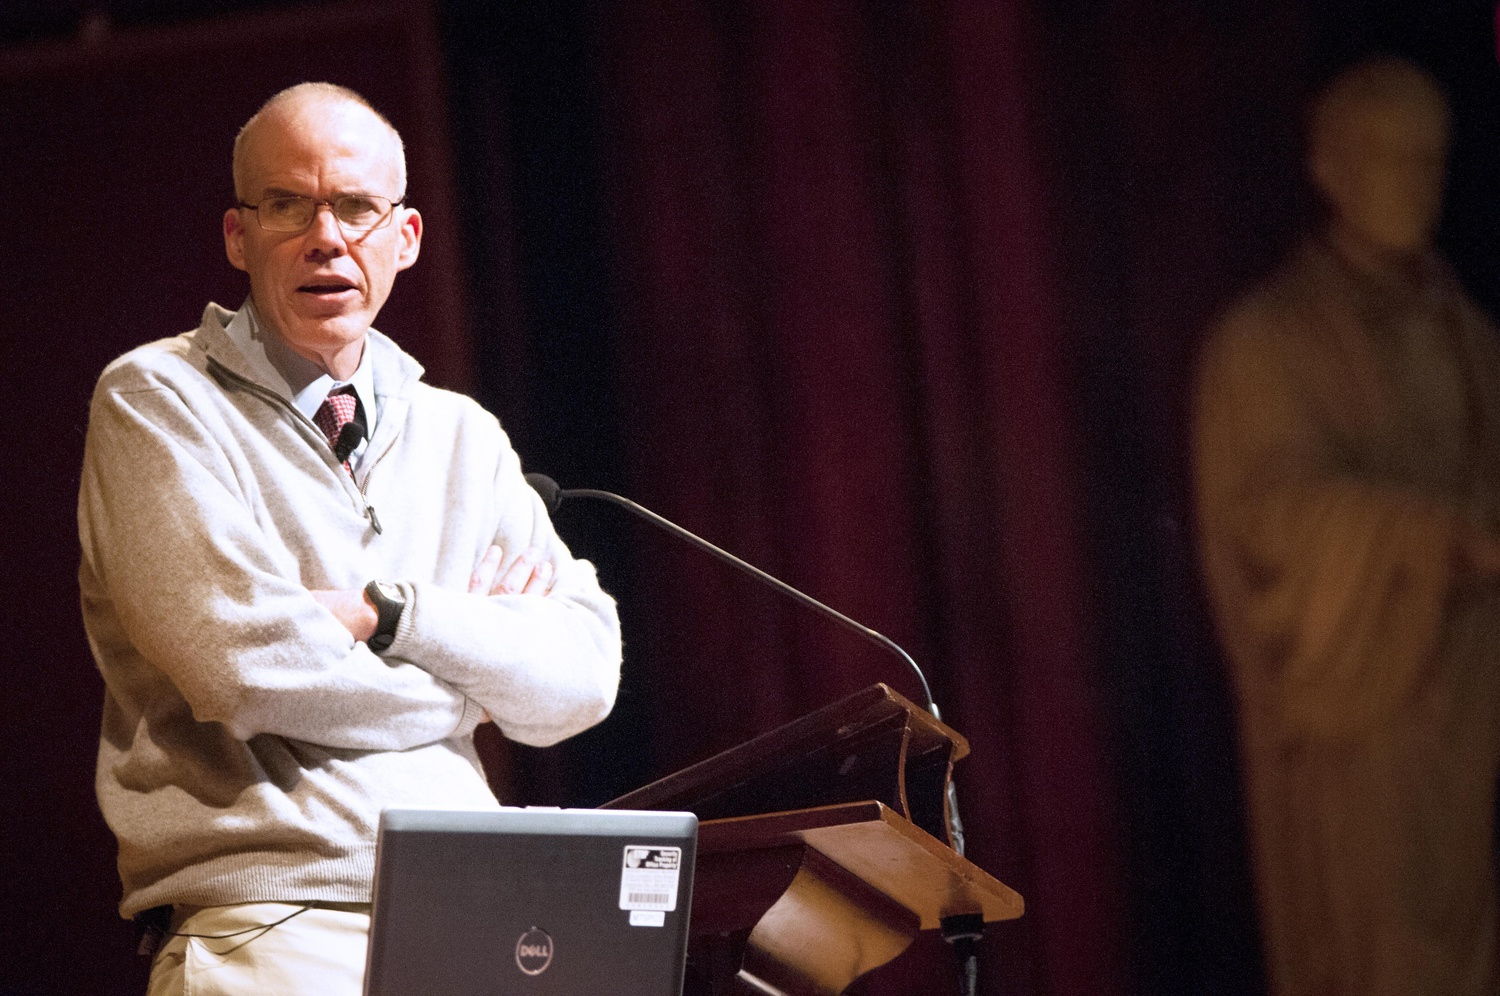 William E. McKibben '82, environmentalist and author, conducts a lecture on climate change and fossil fuel divestment at Sanders Theatre on September 17, 2013.